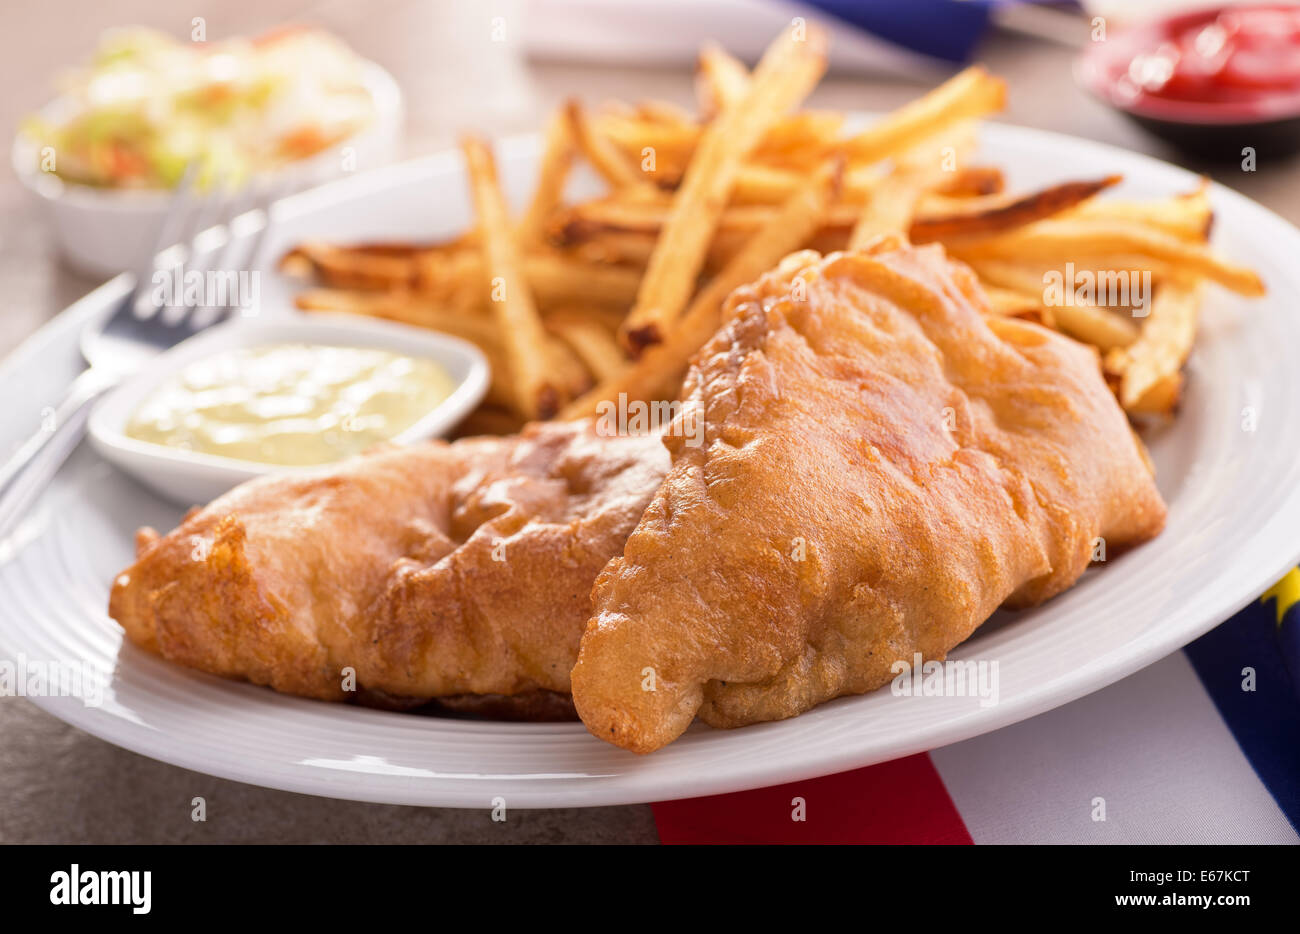 A plate of delicious fish and chips with tartar sauce and coleslaw. - Stock Image